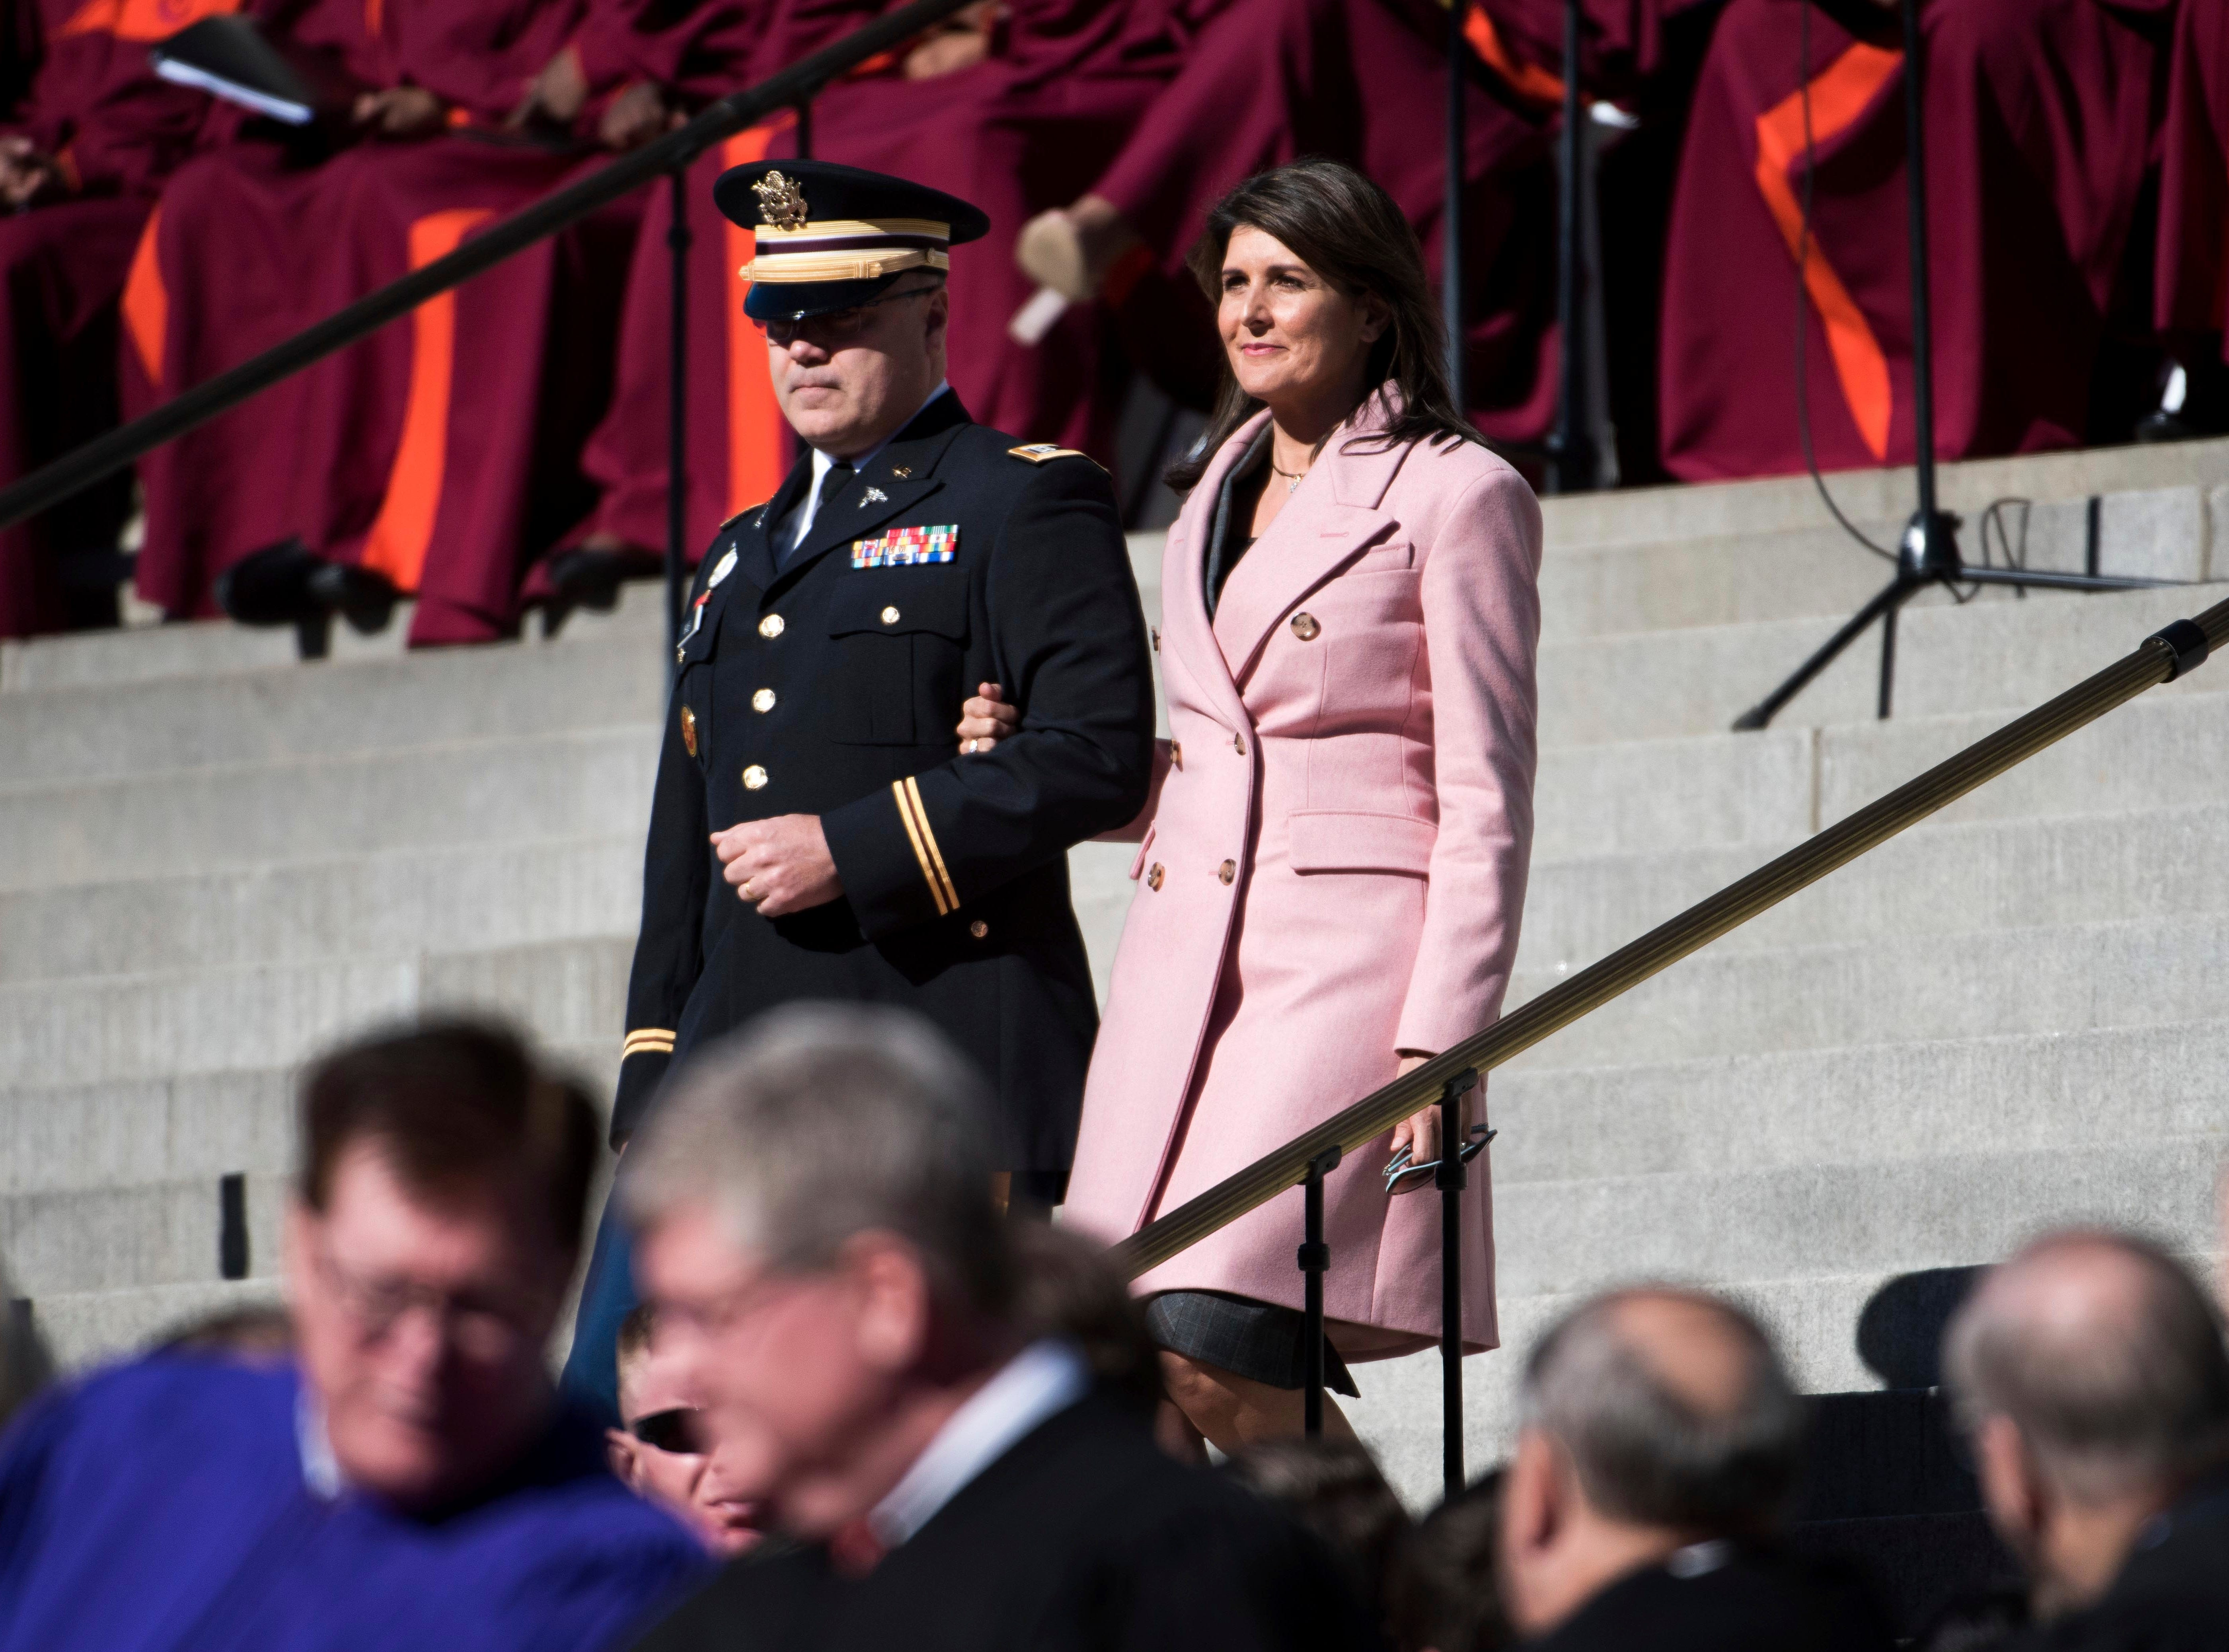 Former United Nations Ambassador and South Carolina Governor Nikki Haley, right, walks with her husband Michael Haley during the inauguration ceremony for South Carolina Governor Henry McMaster Wednesday, Jan. 9, 2019, in Columbia, S.C. (AP Photo/Sean Rayford)